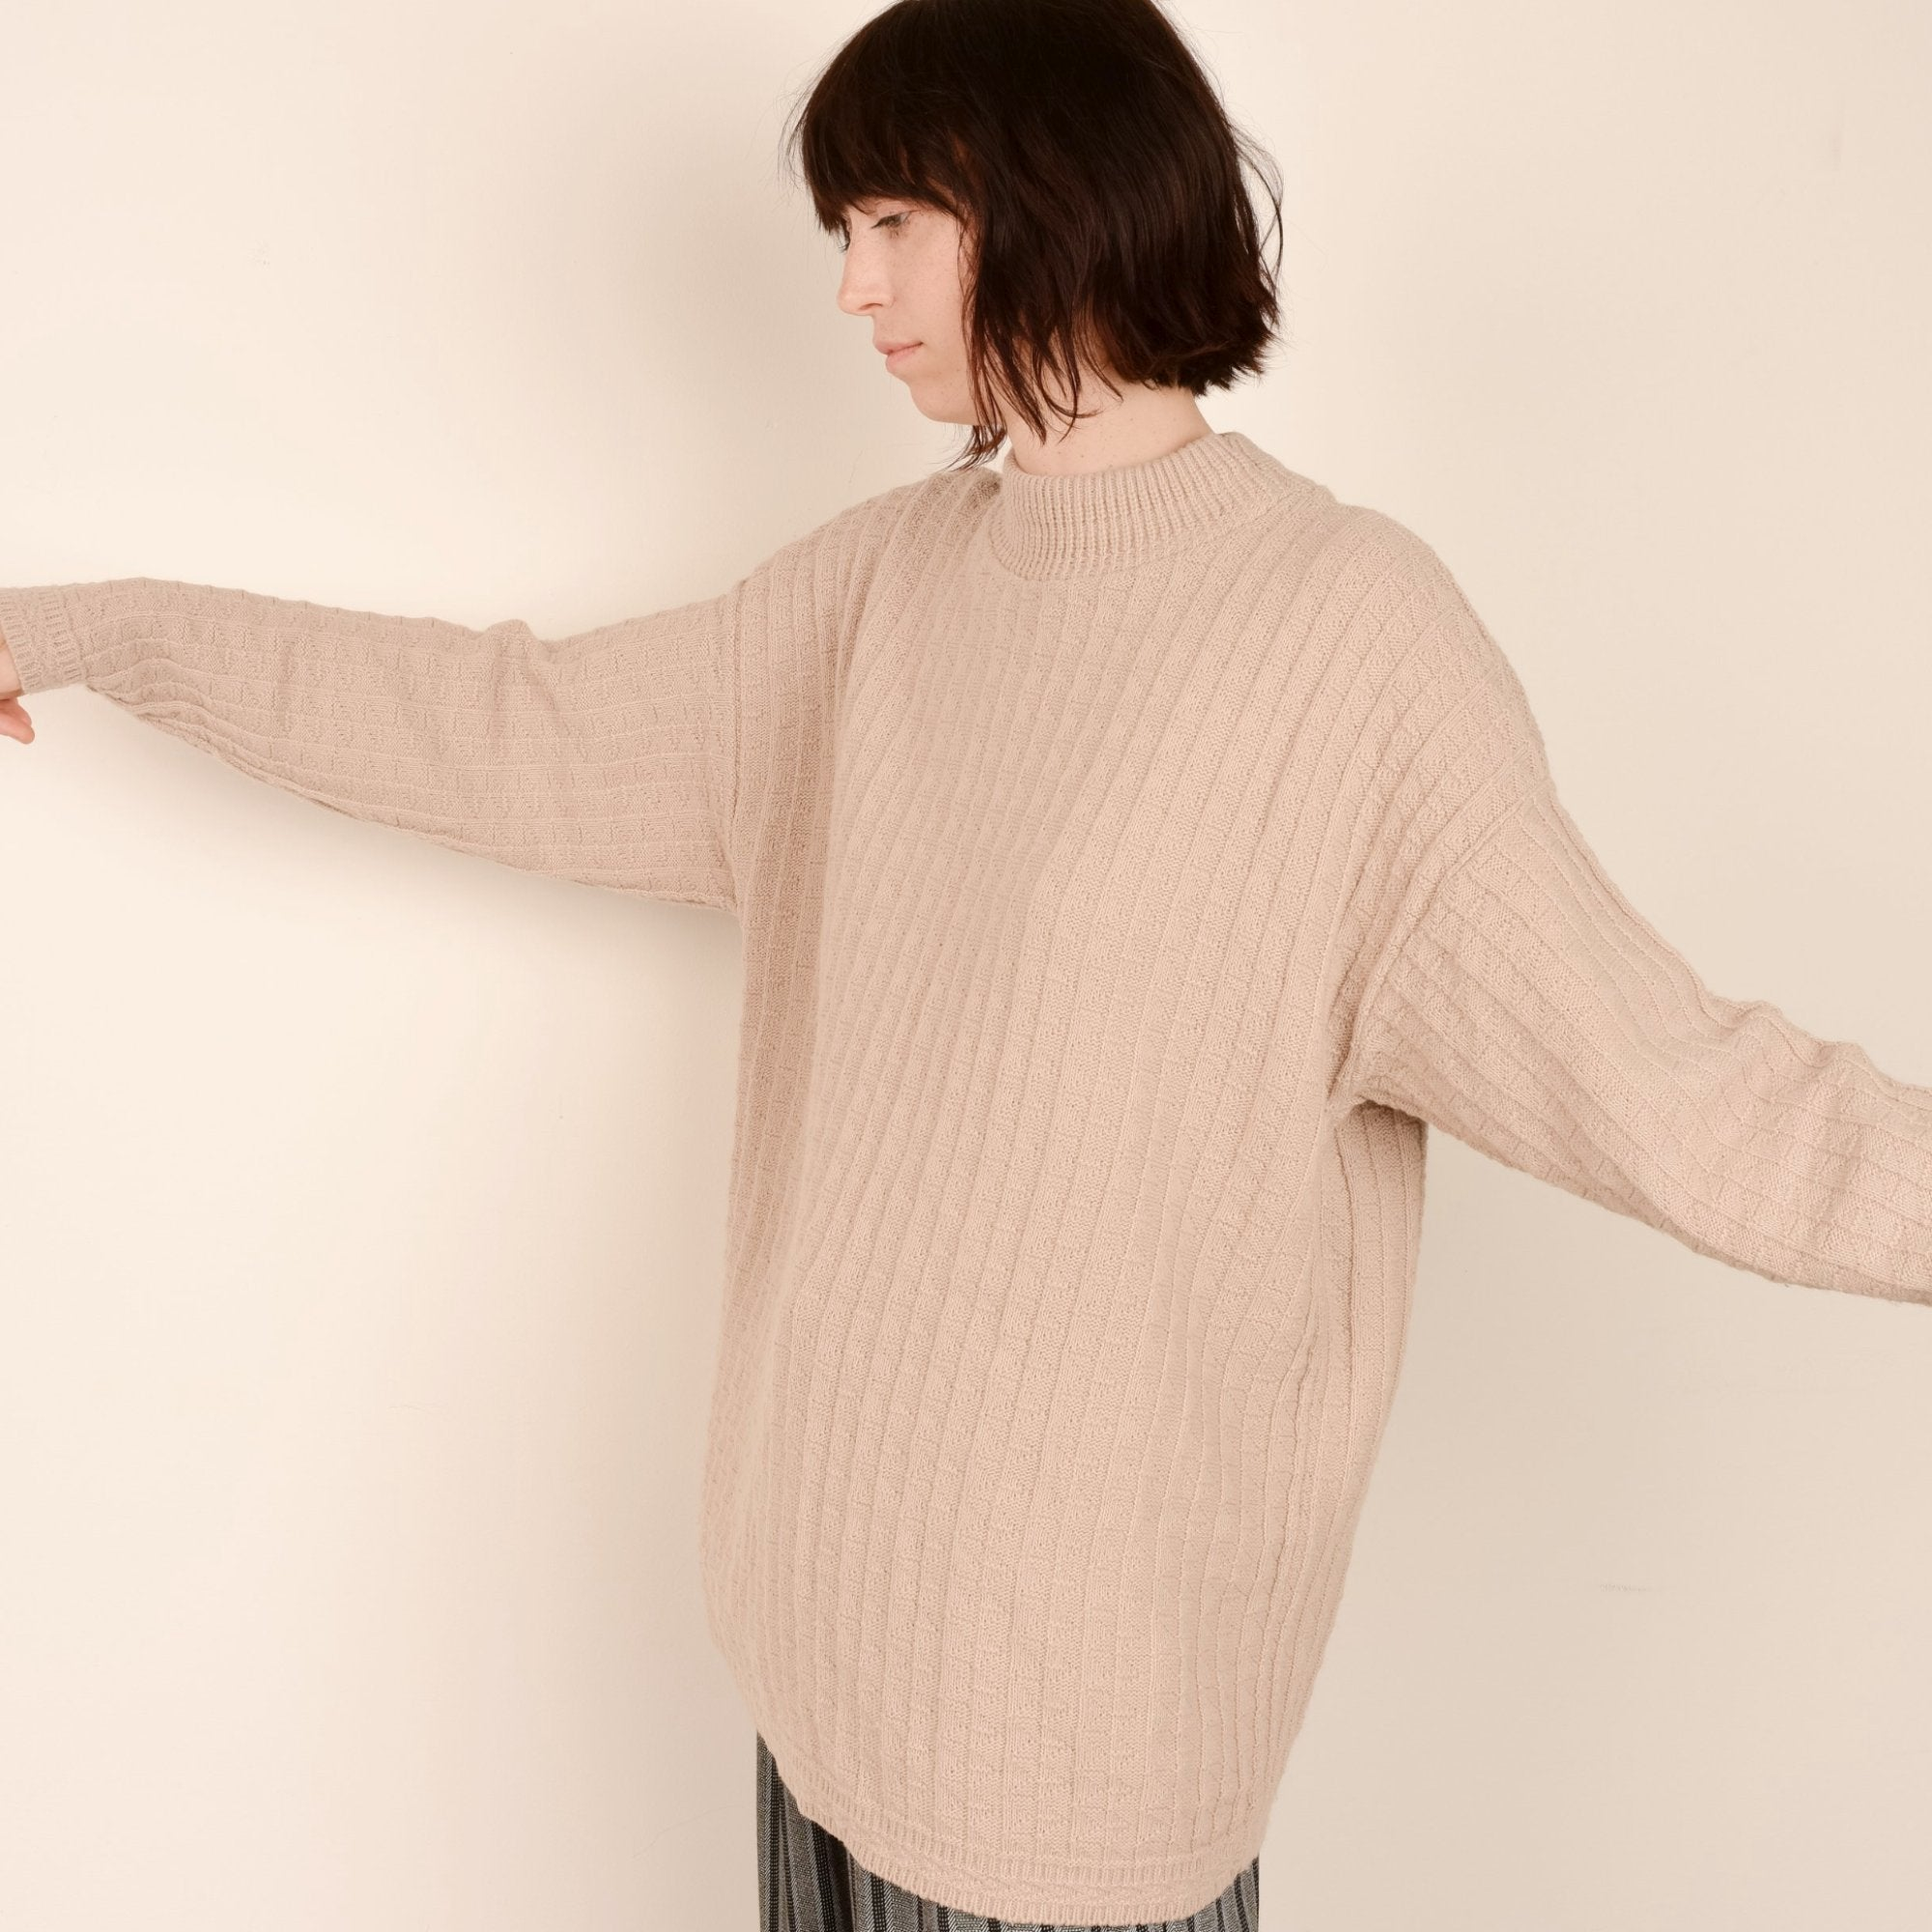 Vintage Beige Oversized Knit Sweater / S - Closed Caption